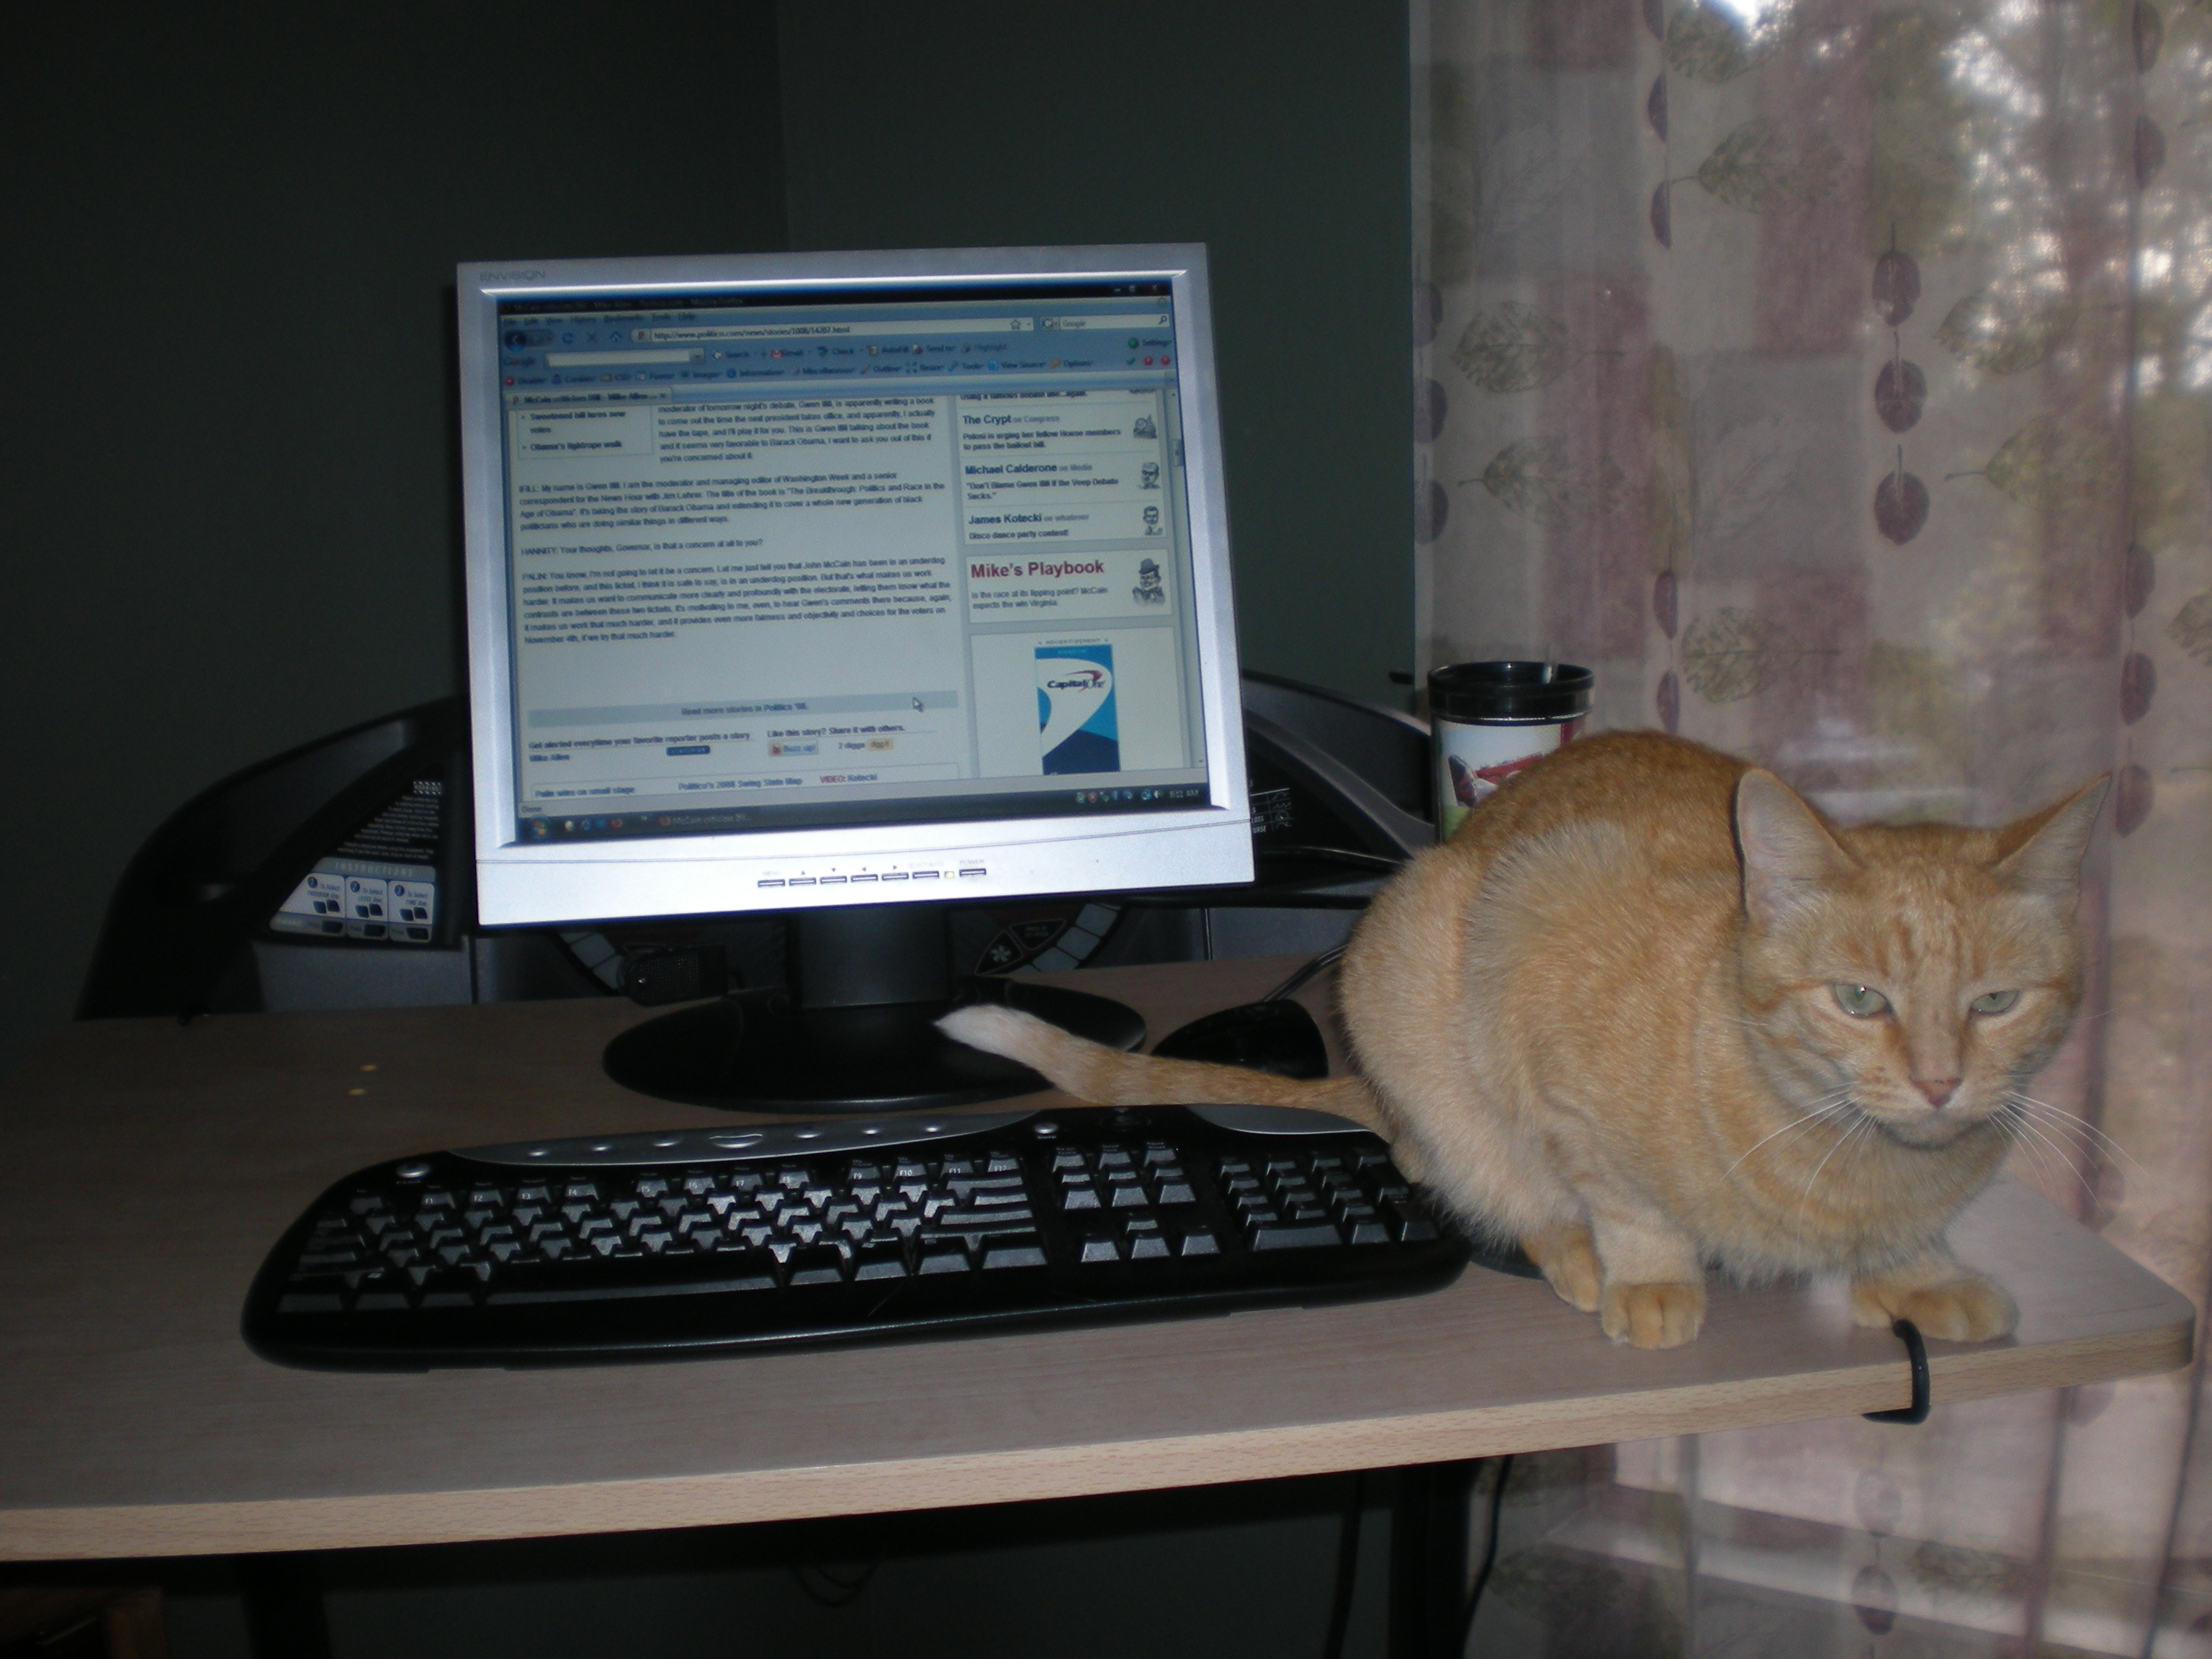 Cats like treadmill desks too!